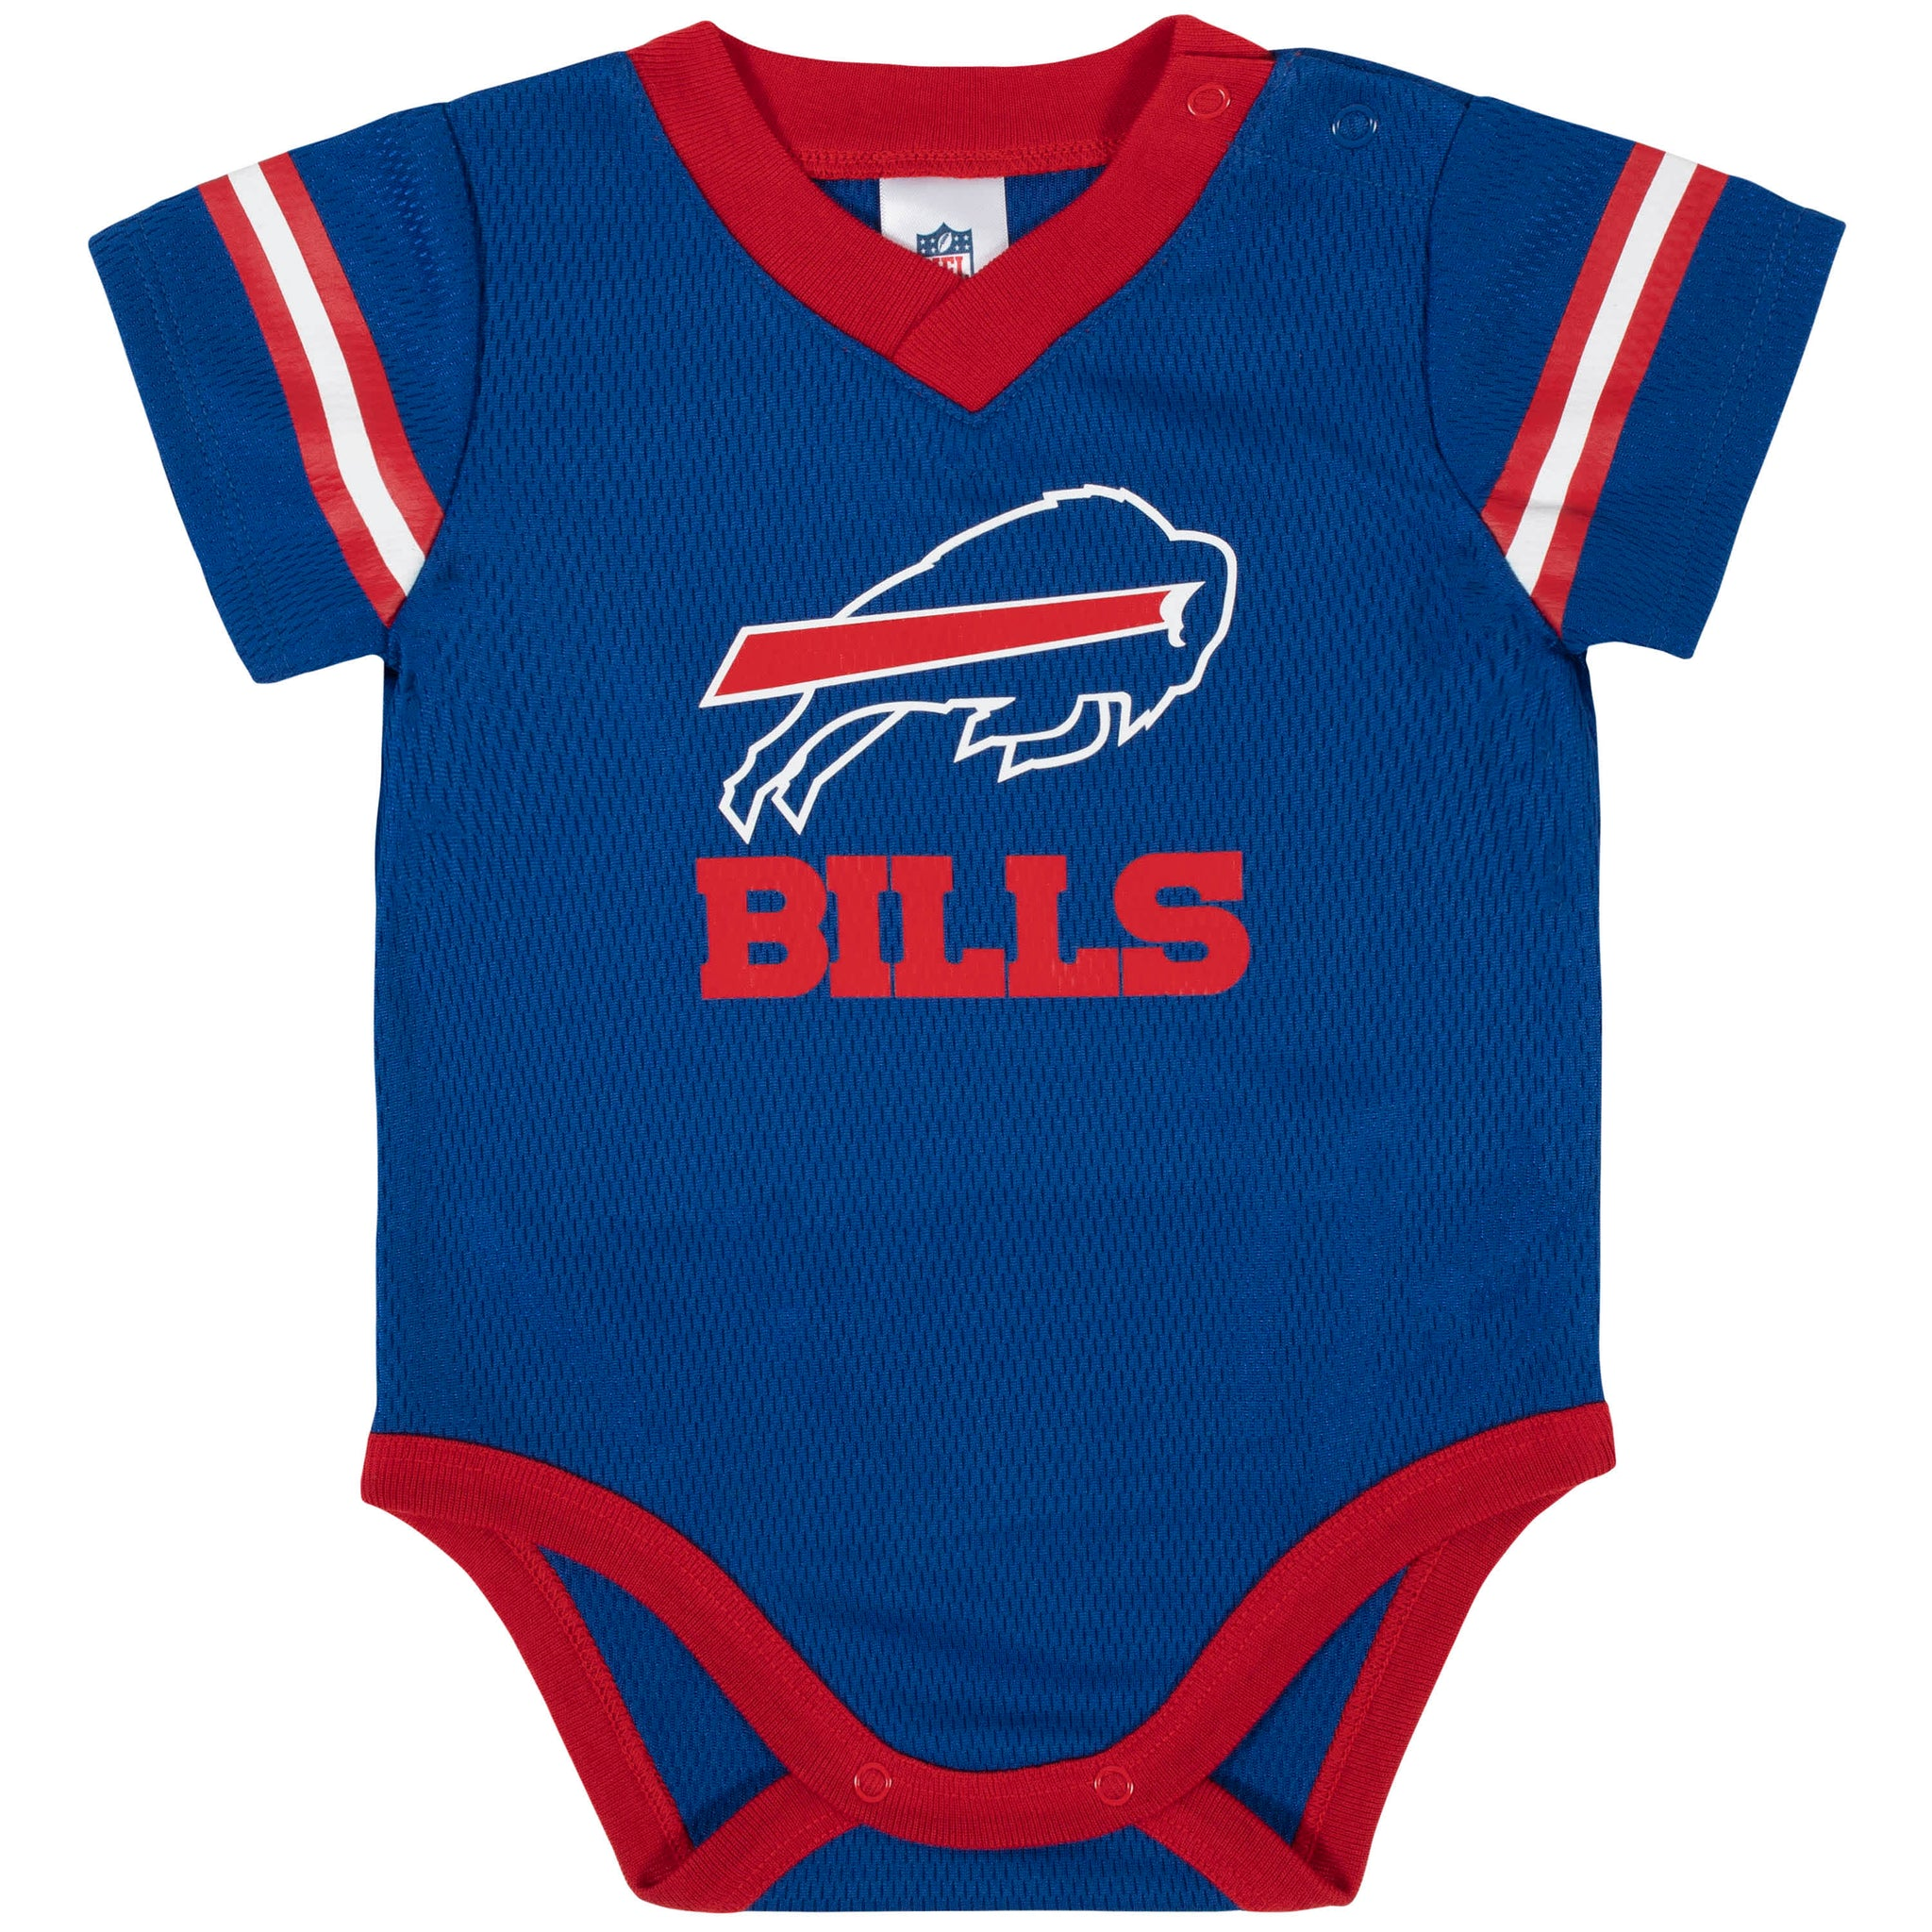 Buffalo Bills Baby Boys Bodysuit